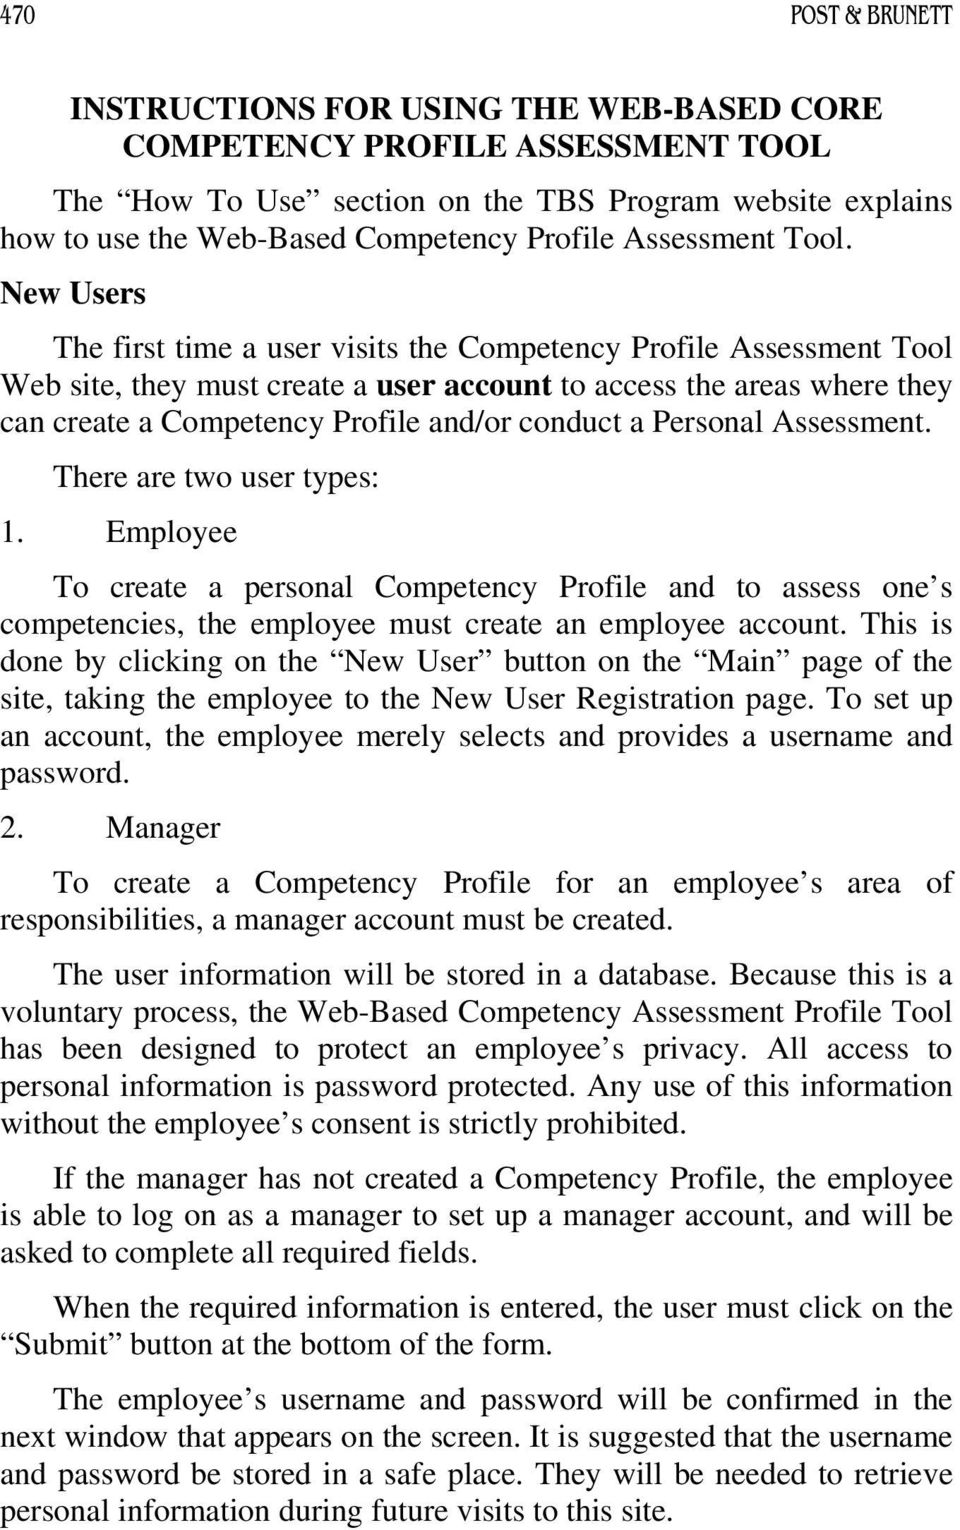 New Users The first time a user visits the Competency Profile Assessment Tool Web site, they must create a user account to access the areas where they can create a Competency Profile and/or conduct a